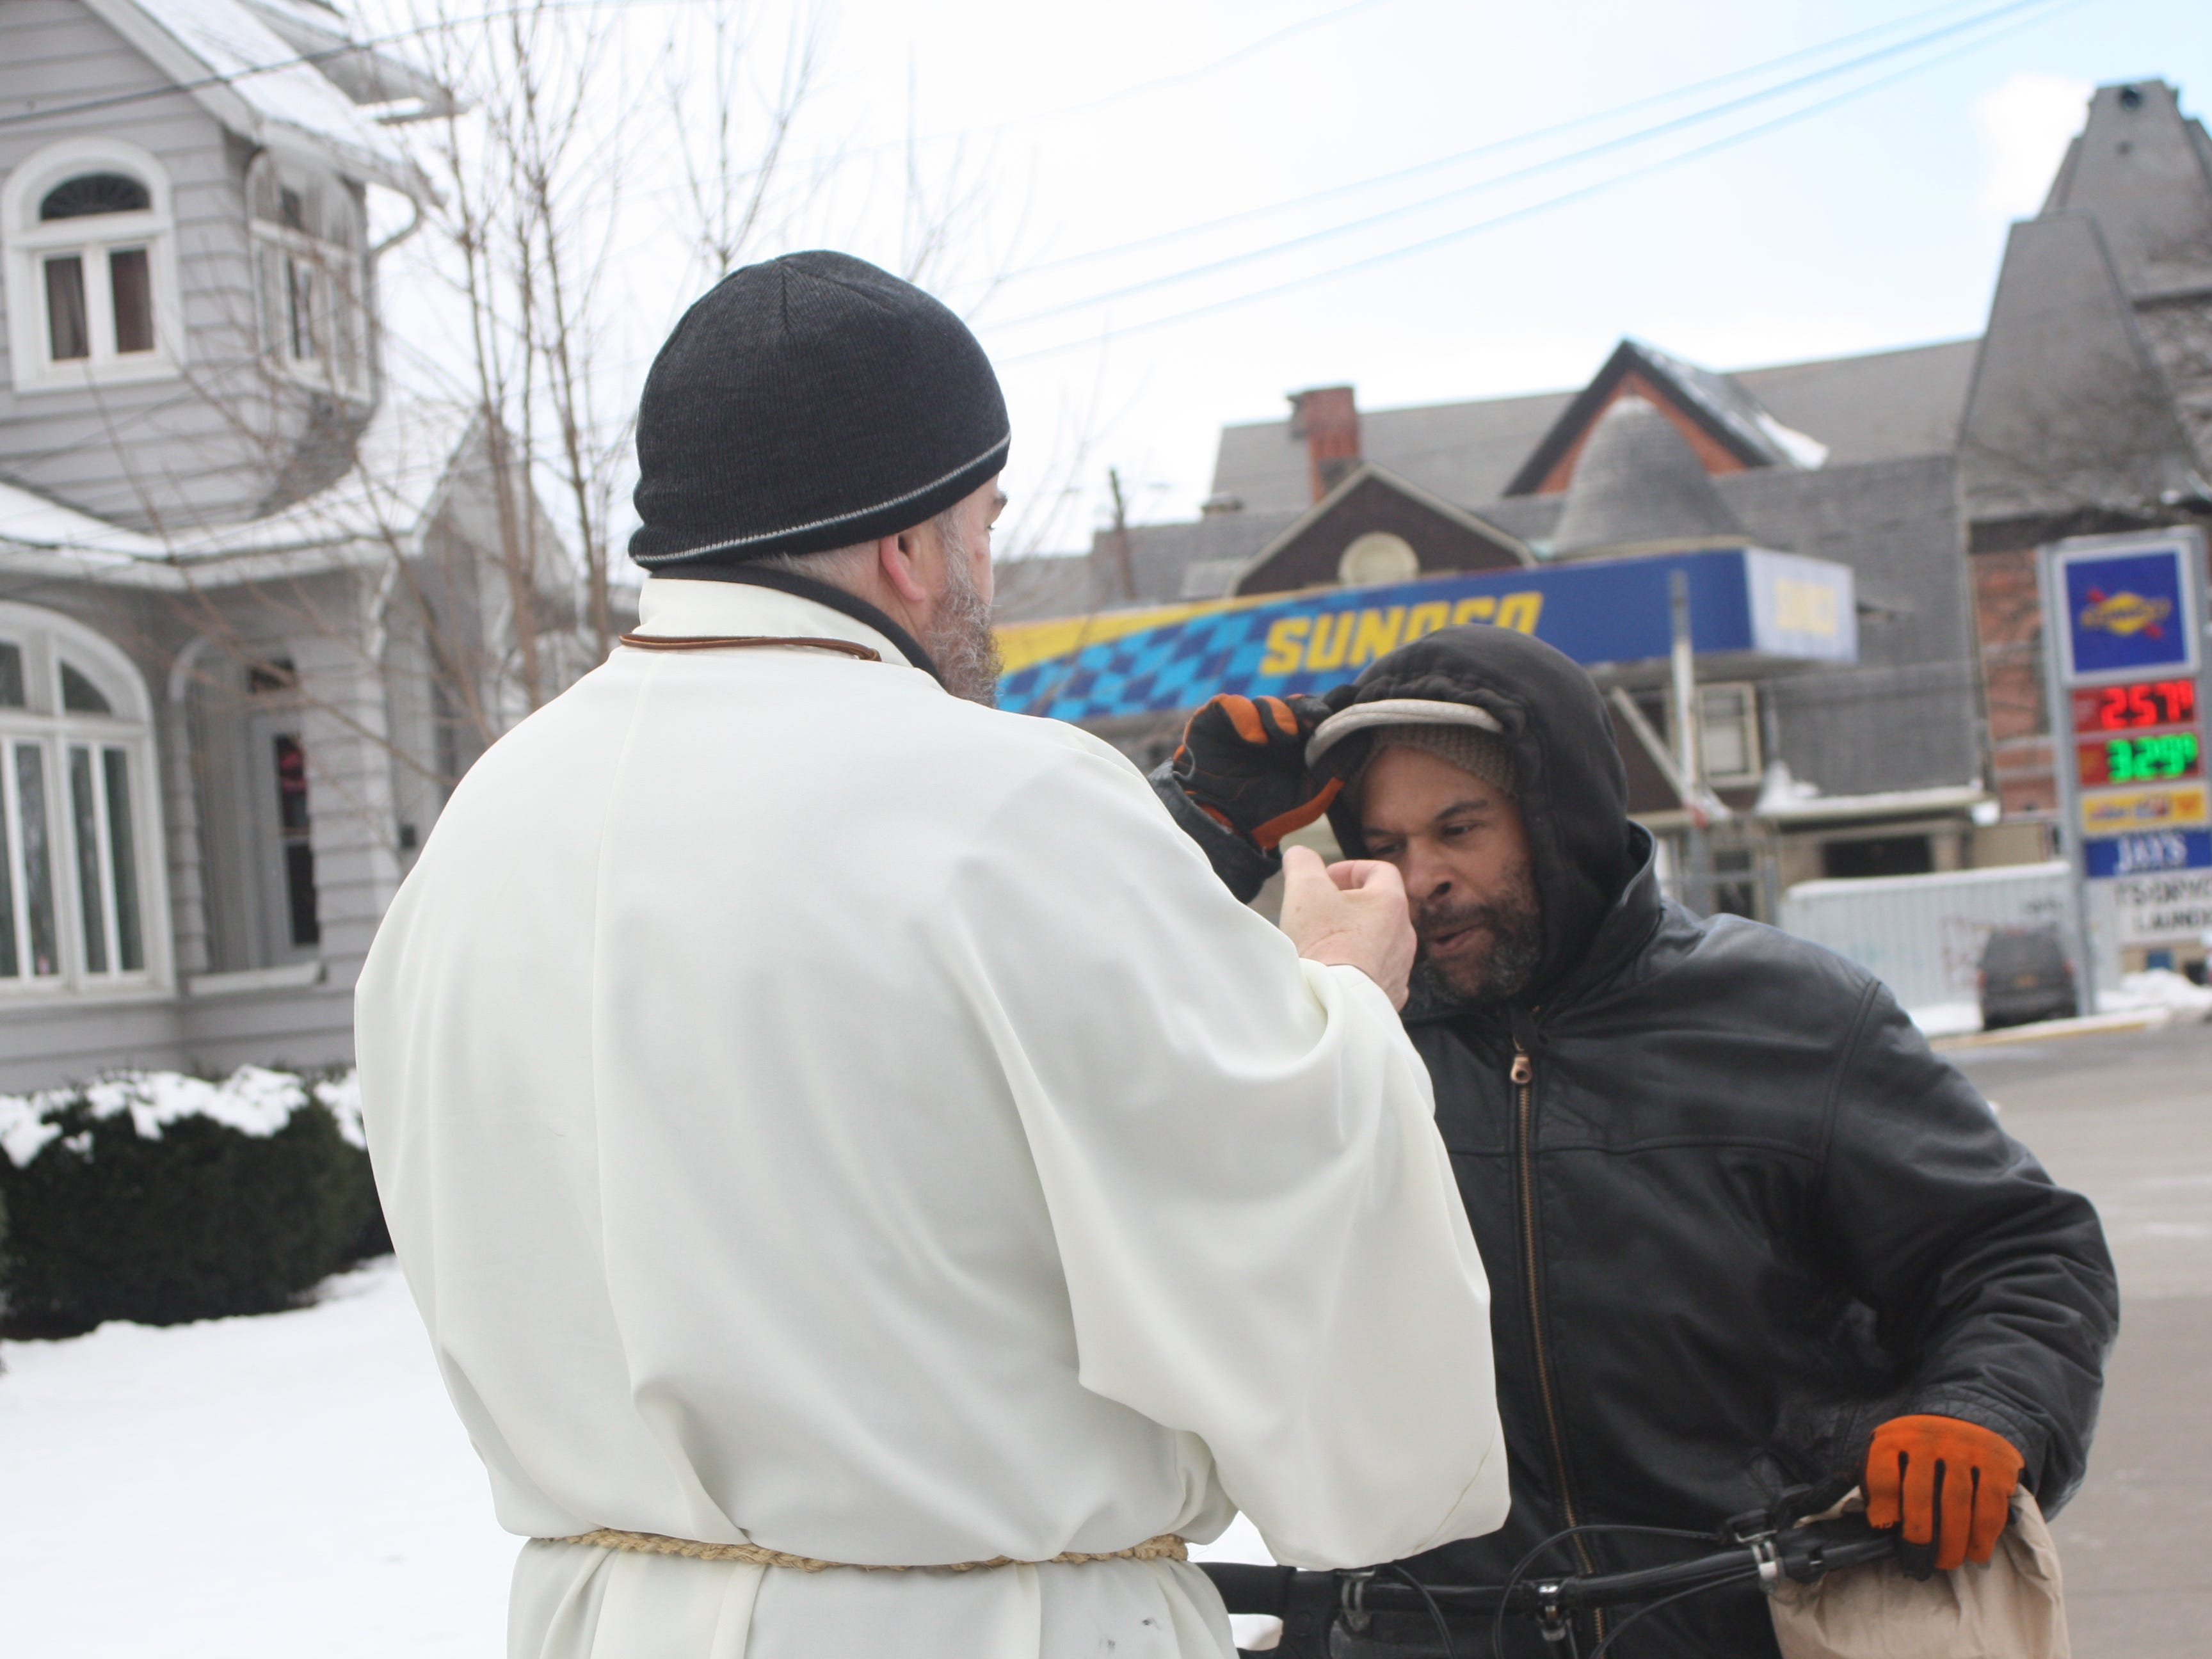 Clergy from Redeemer Lutheran Church in Binghamton and Christ the King Lutheran Church provided ashes to passersby on the street for Ash Wednesday.